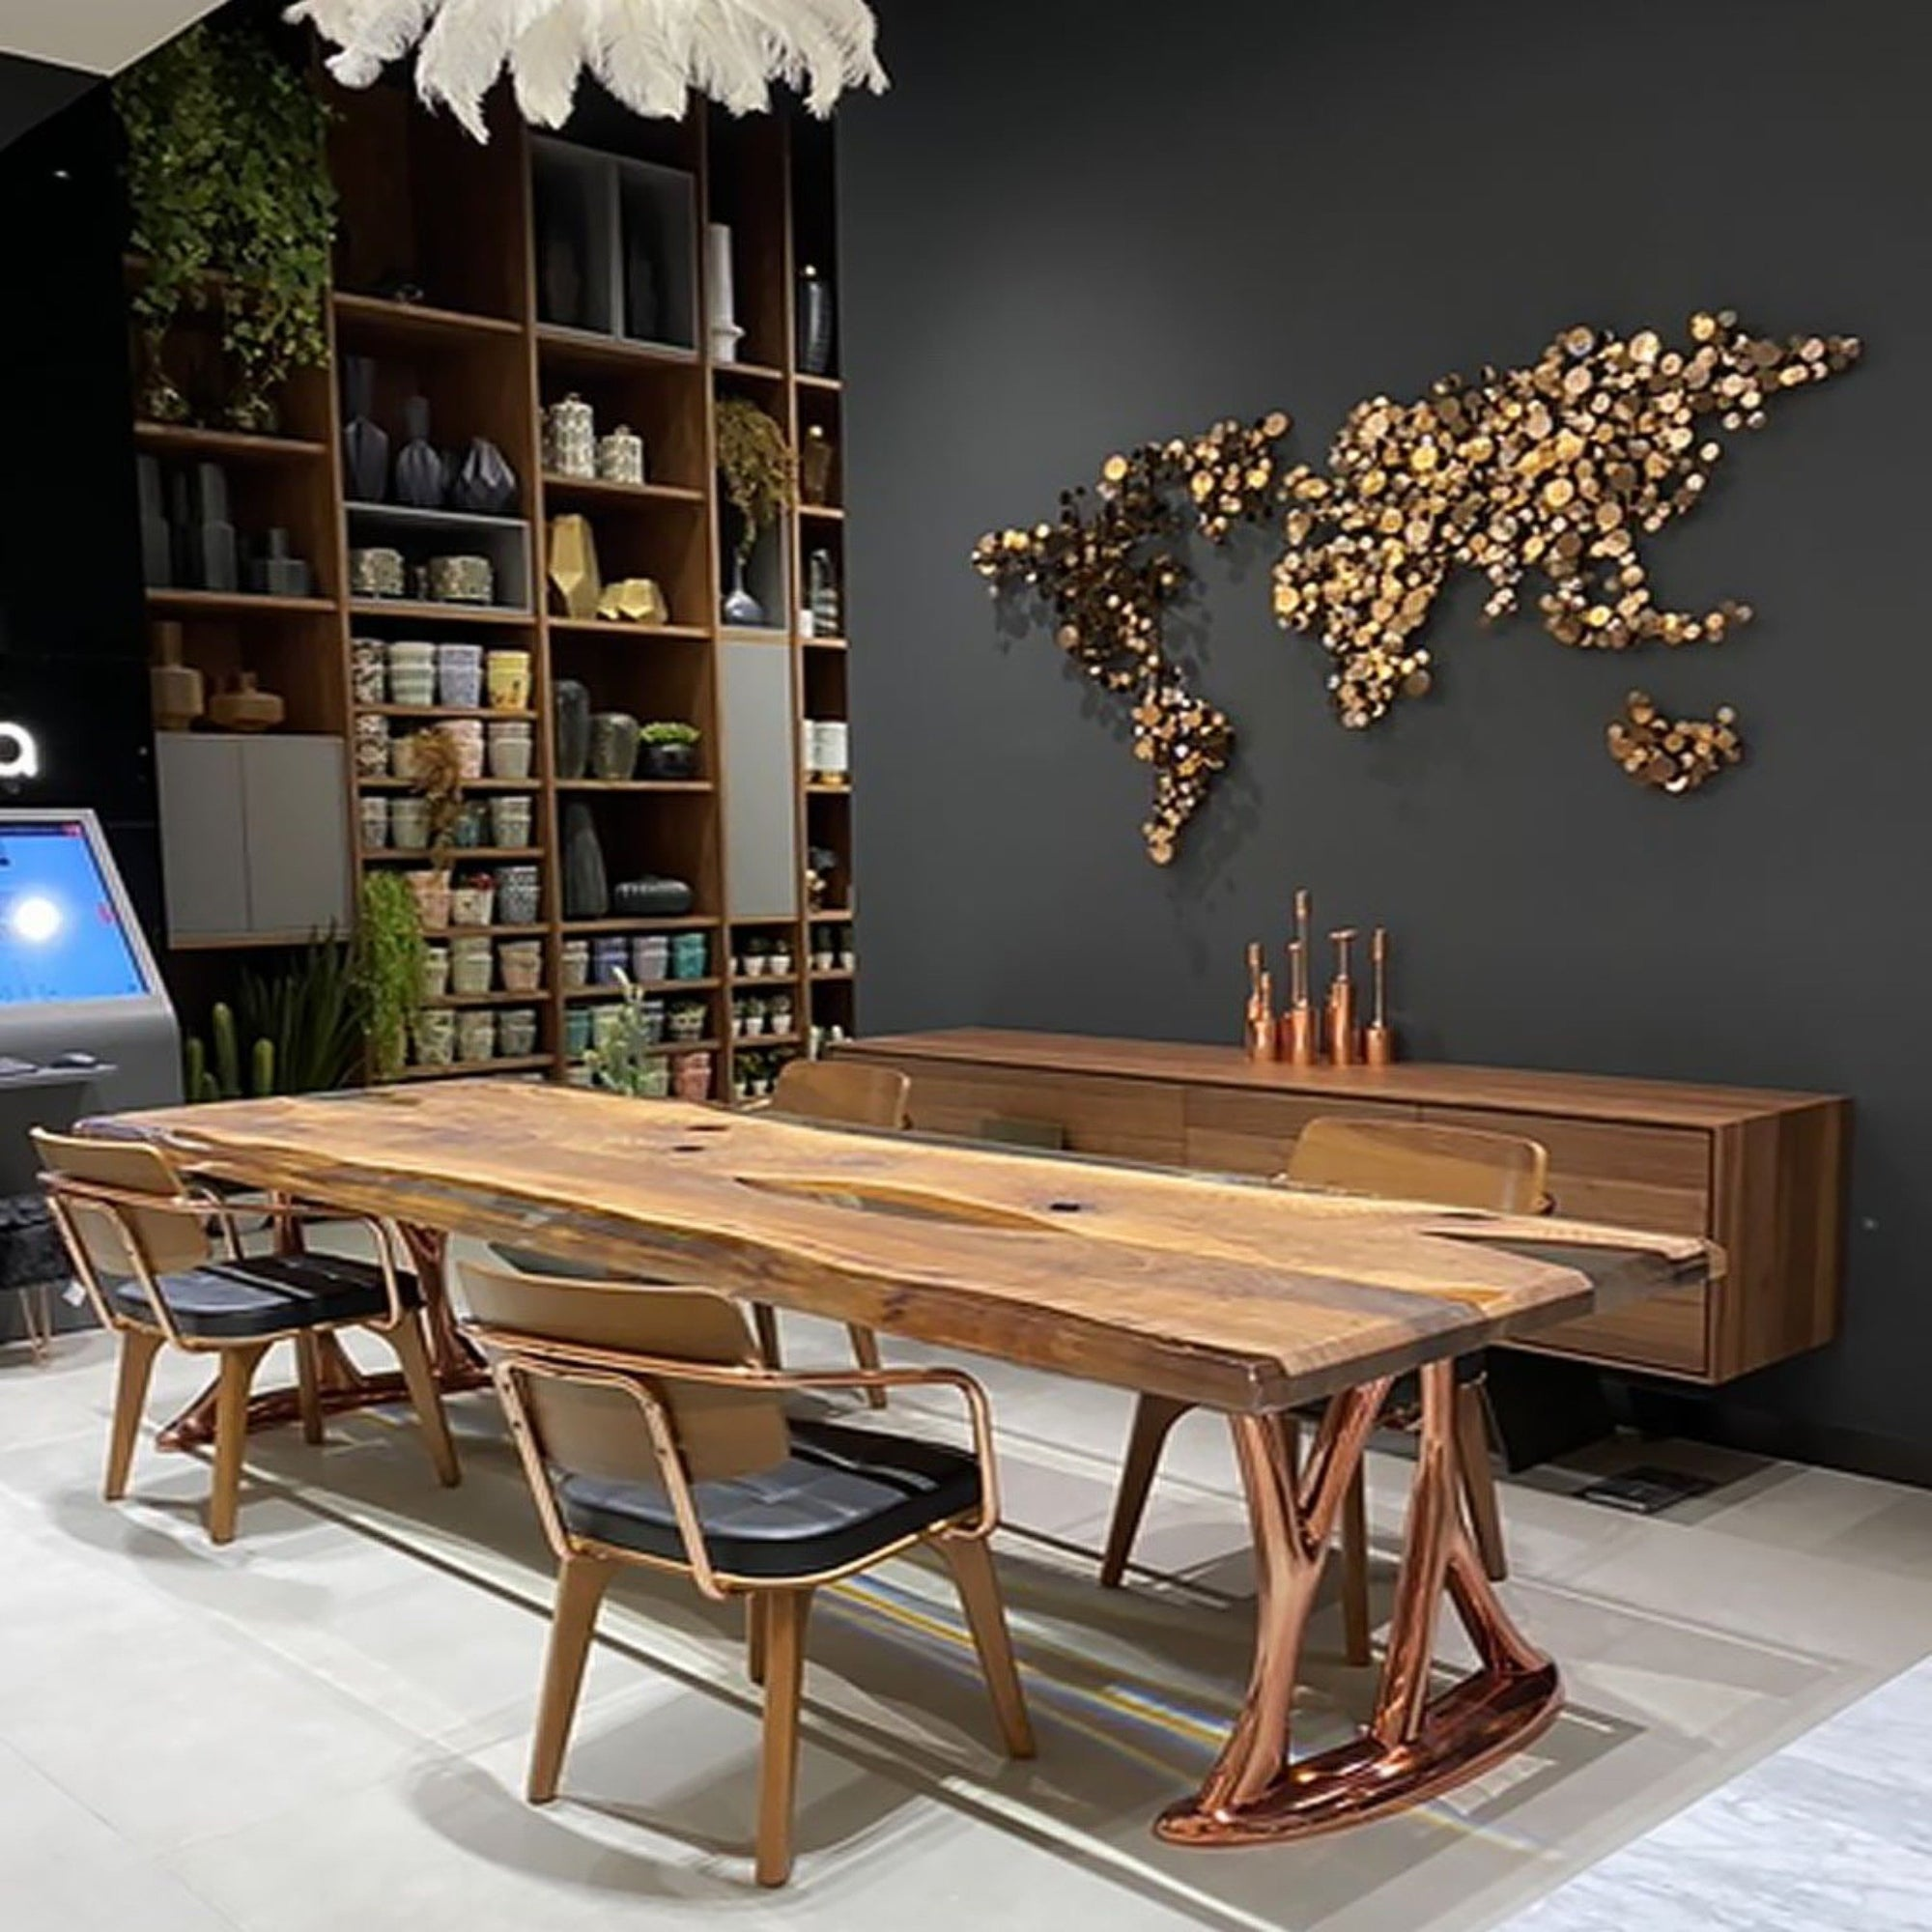 Pre-Order 50 days delivery 300X100 CM LIVE EDGE RESIN DINING TABLE TOP SAN300X100 - ebarza